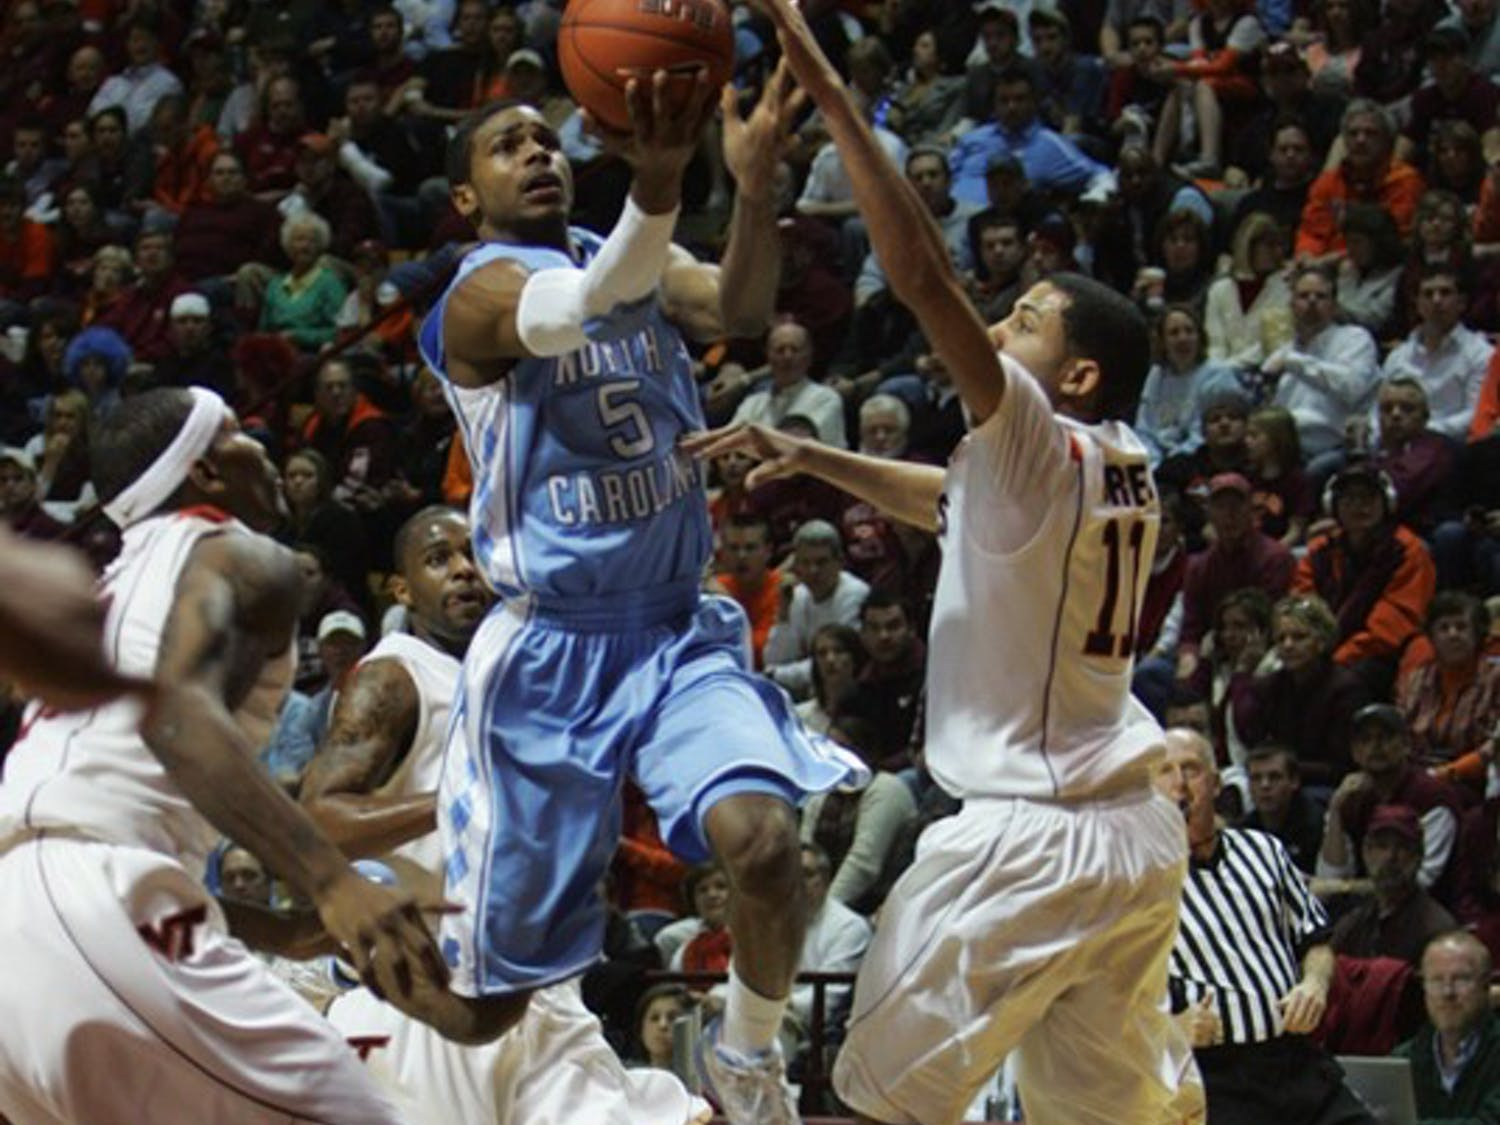 Guard Dexter Strickland started his fourth game of the season against the Hokies. DTH/Margaret Cheatham Williams